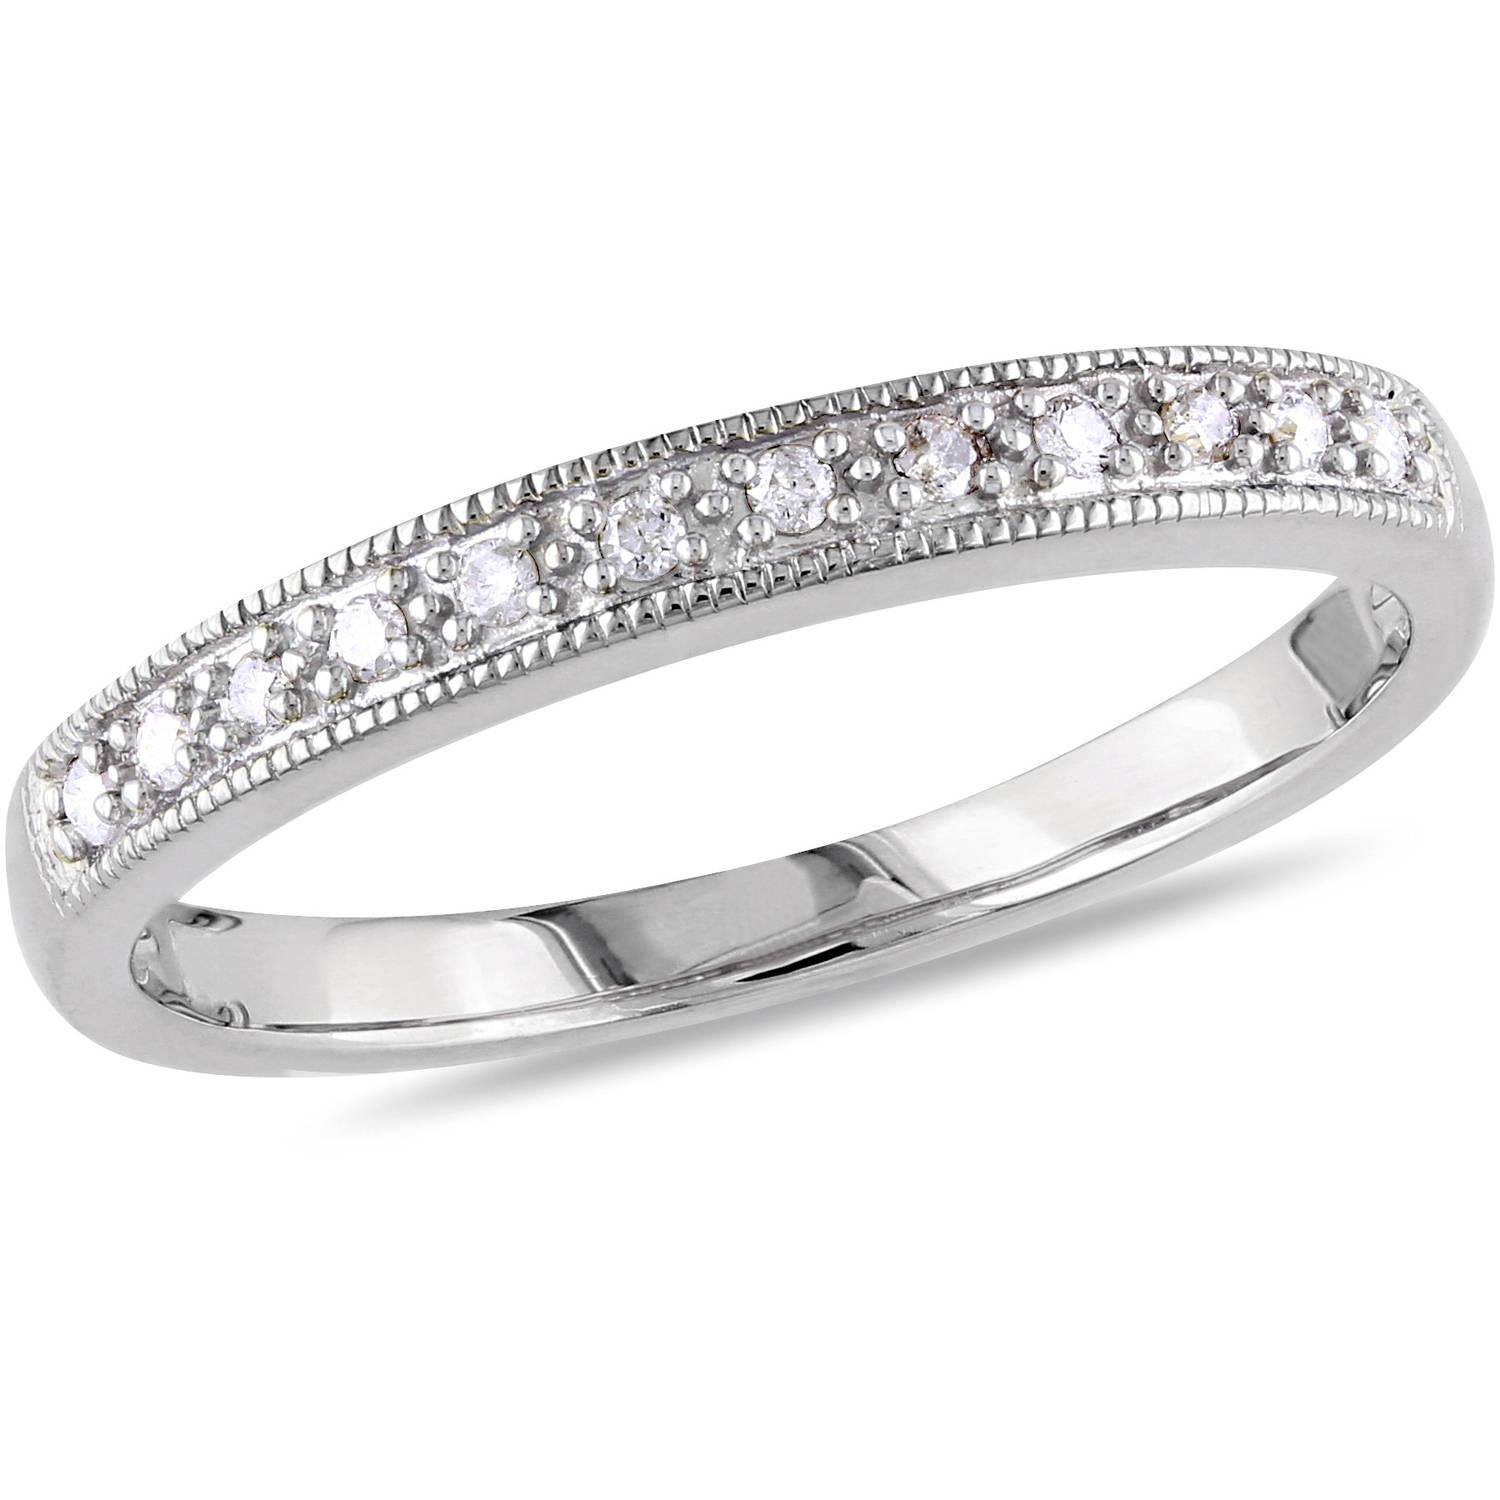 Miabella Diamond-Accent 10kt White Gold Wedding Band by Generic